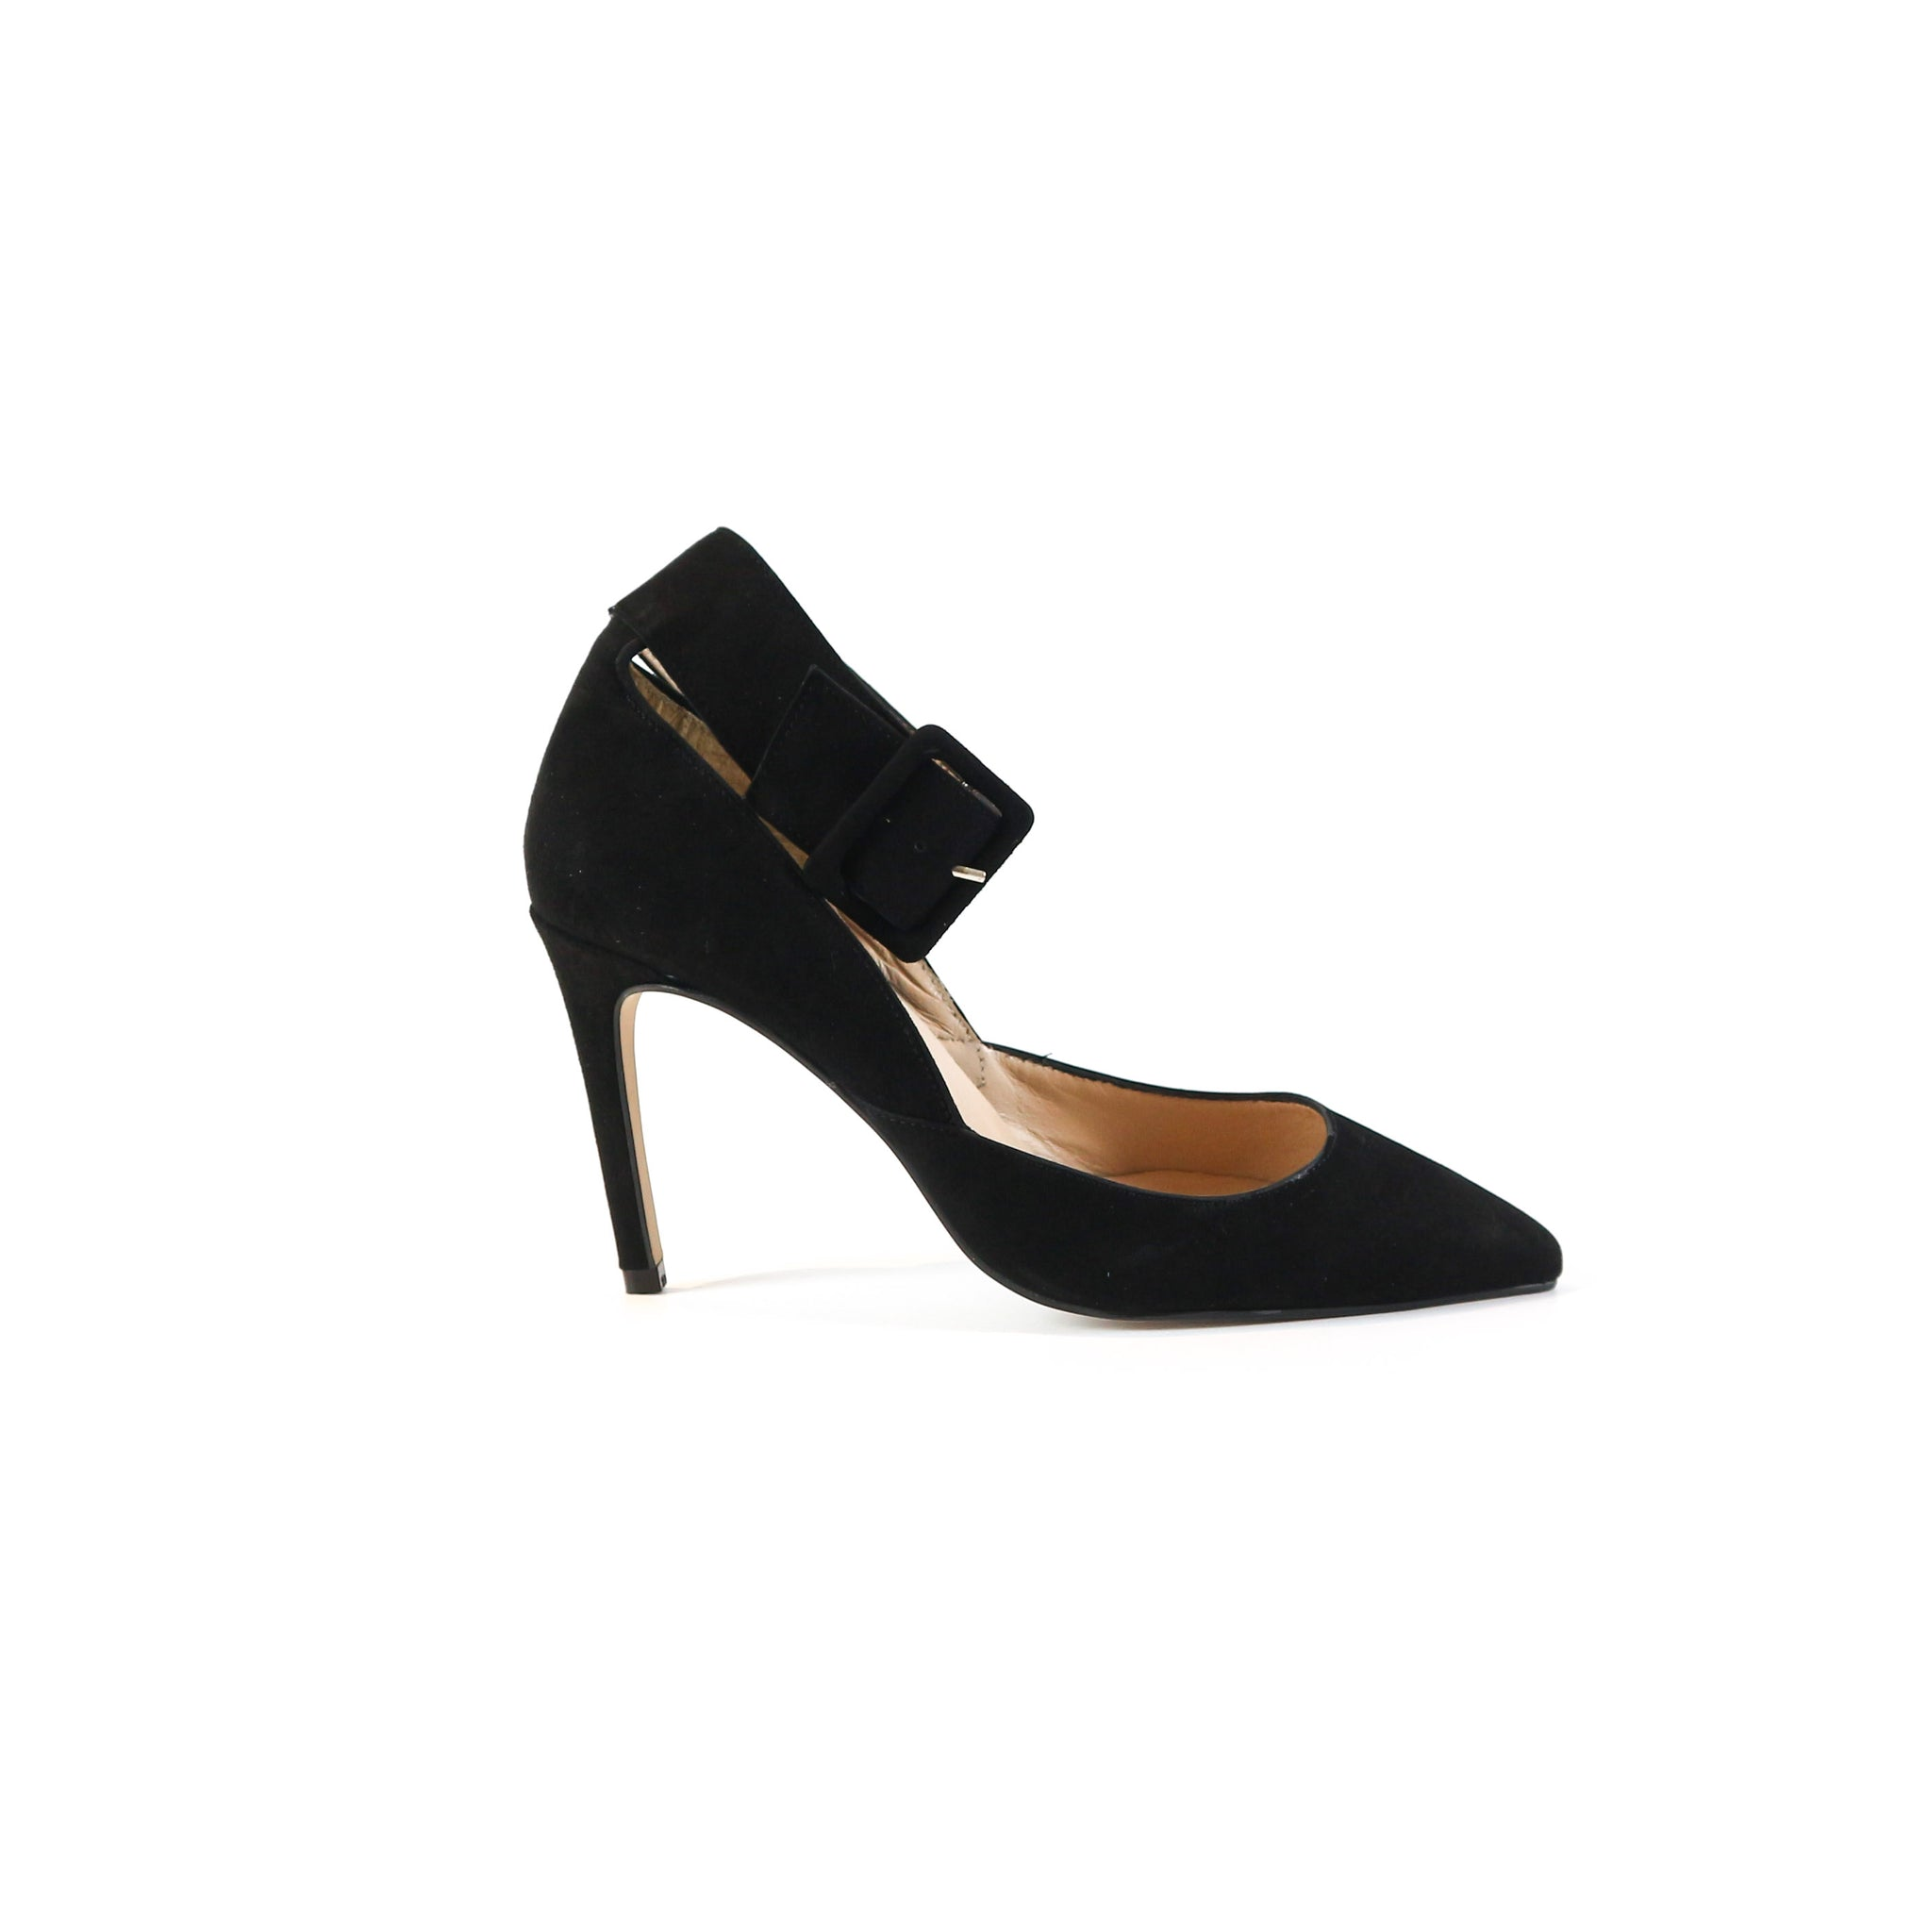 VALENTINA | Strapped Black Heel - TrystShoes